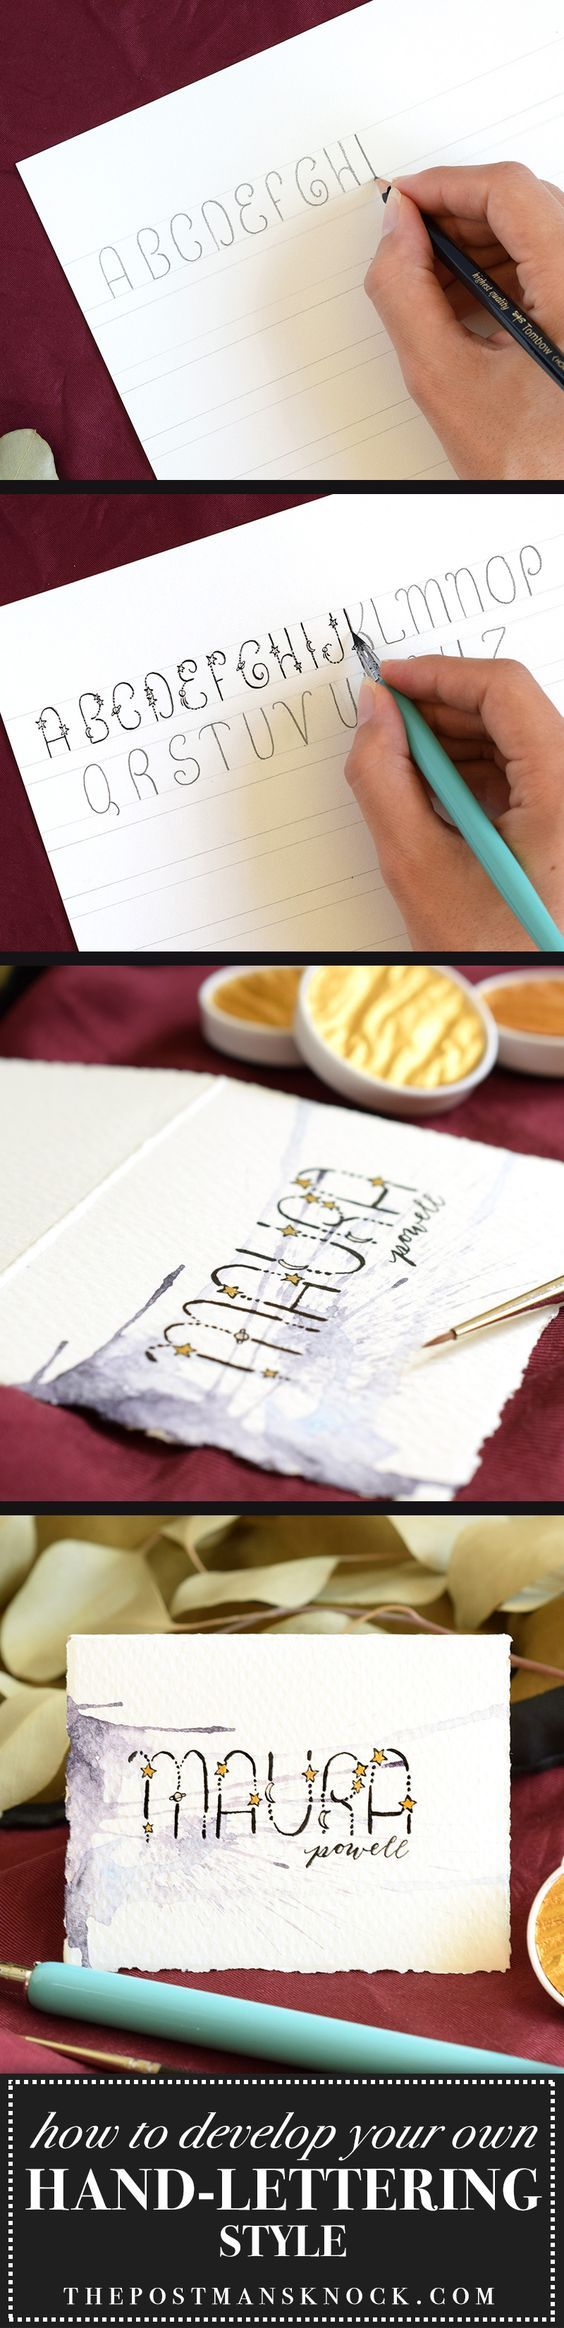 Learn how to develop your own hand-lettering style in a few steps!